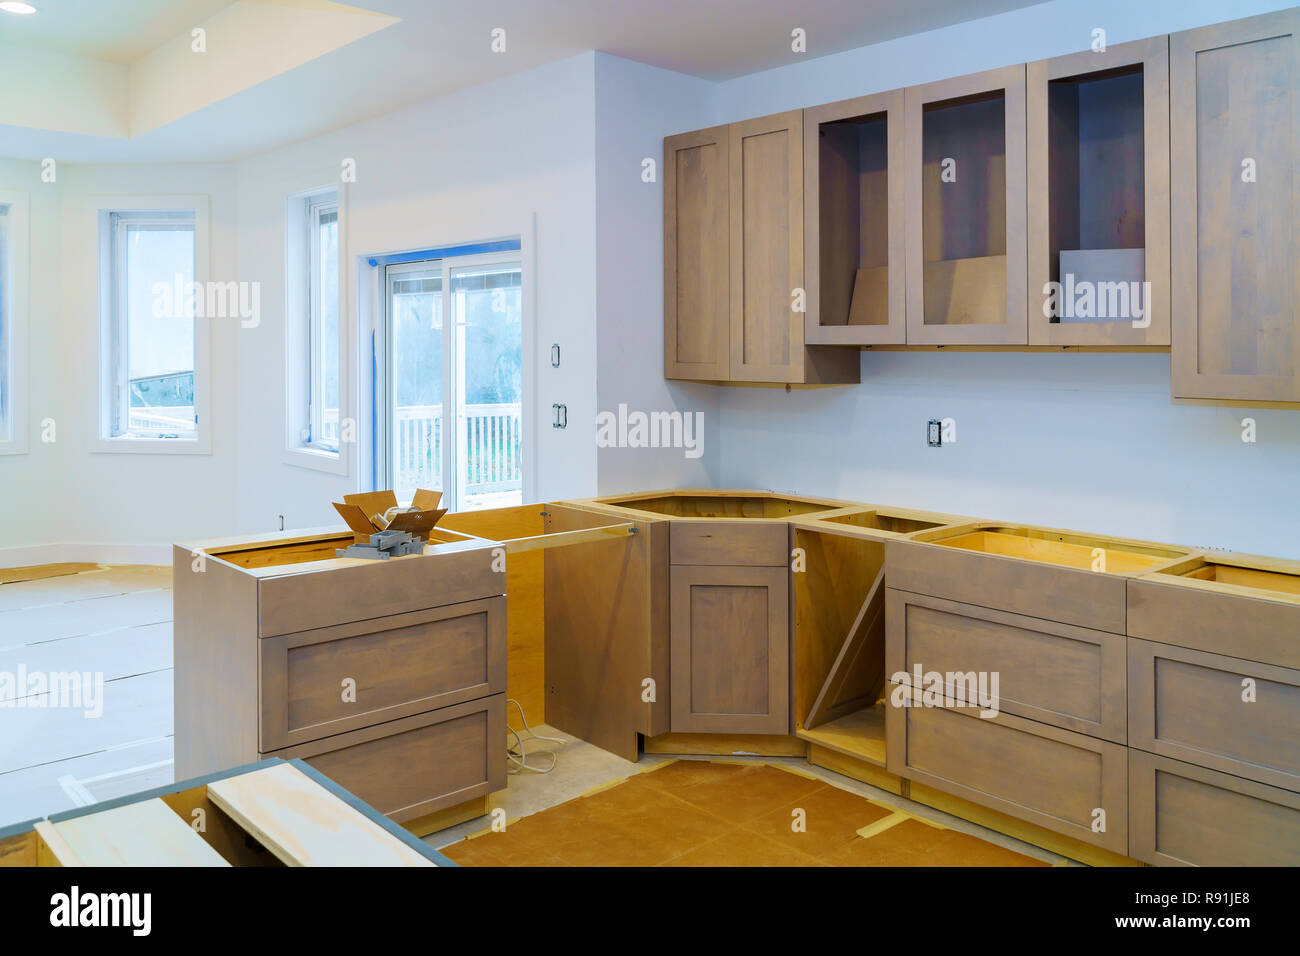 Kitchen Cabinets Installation Improvement Remodel Worm S View